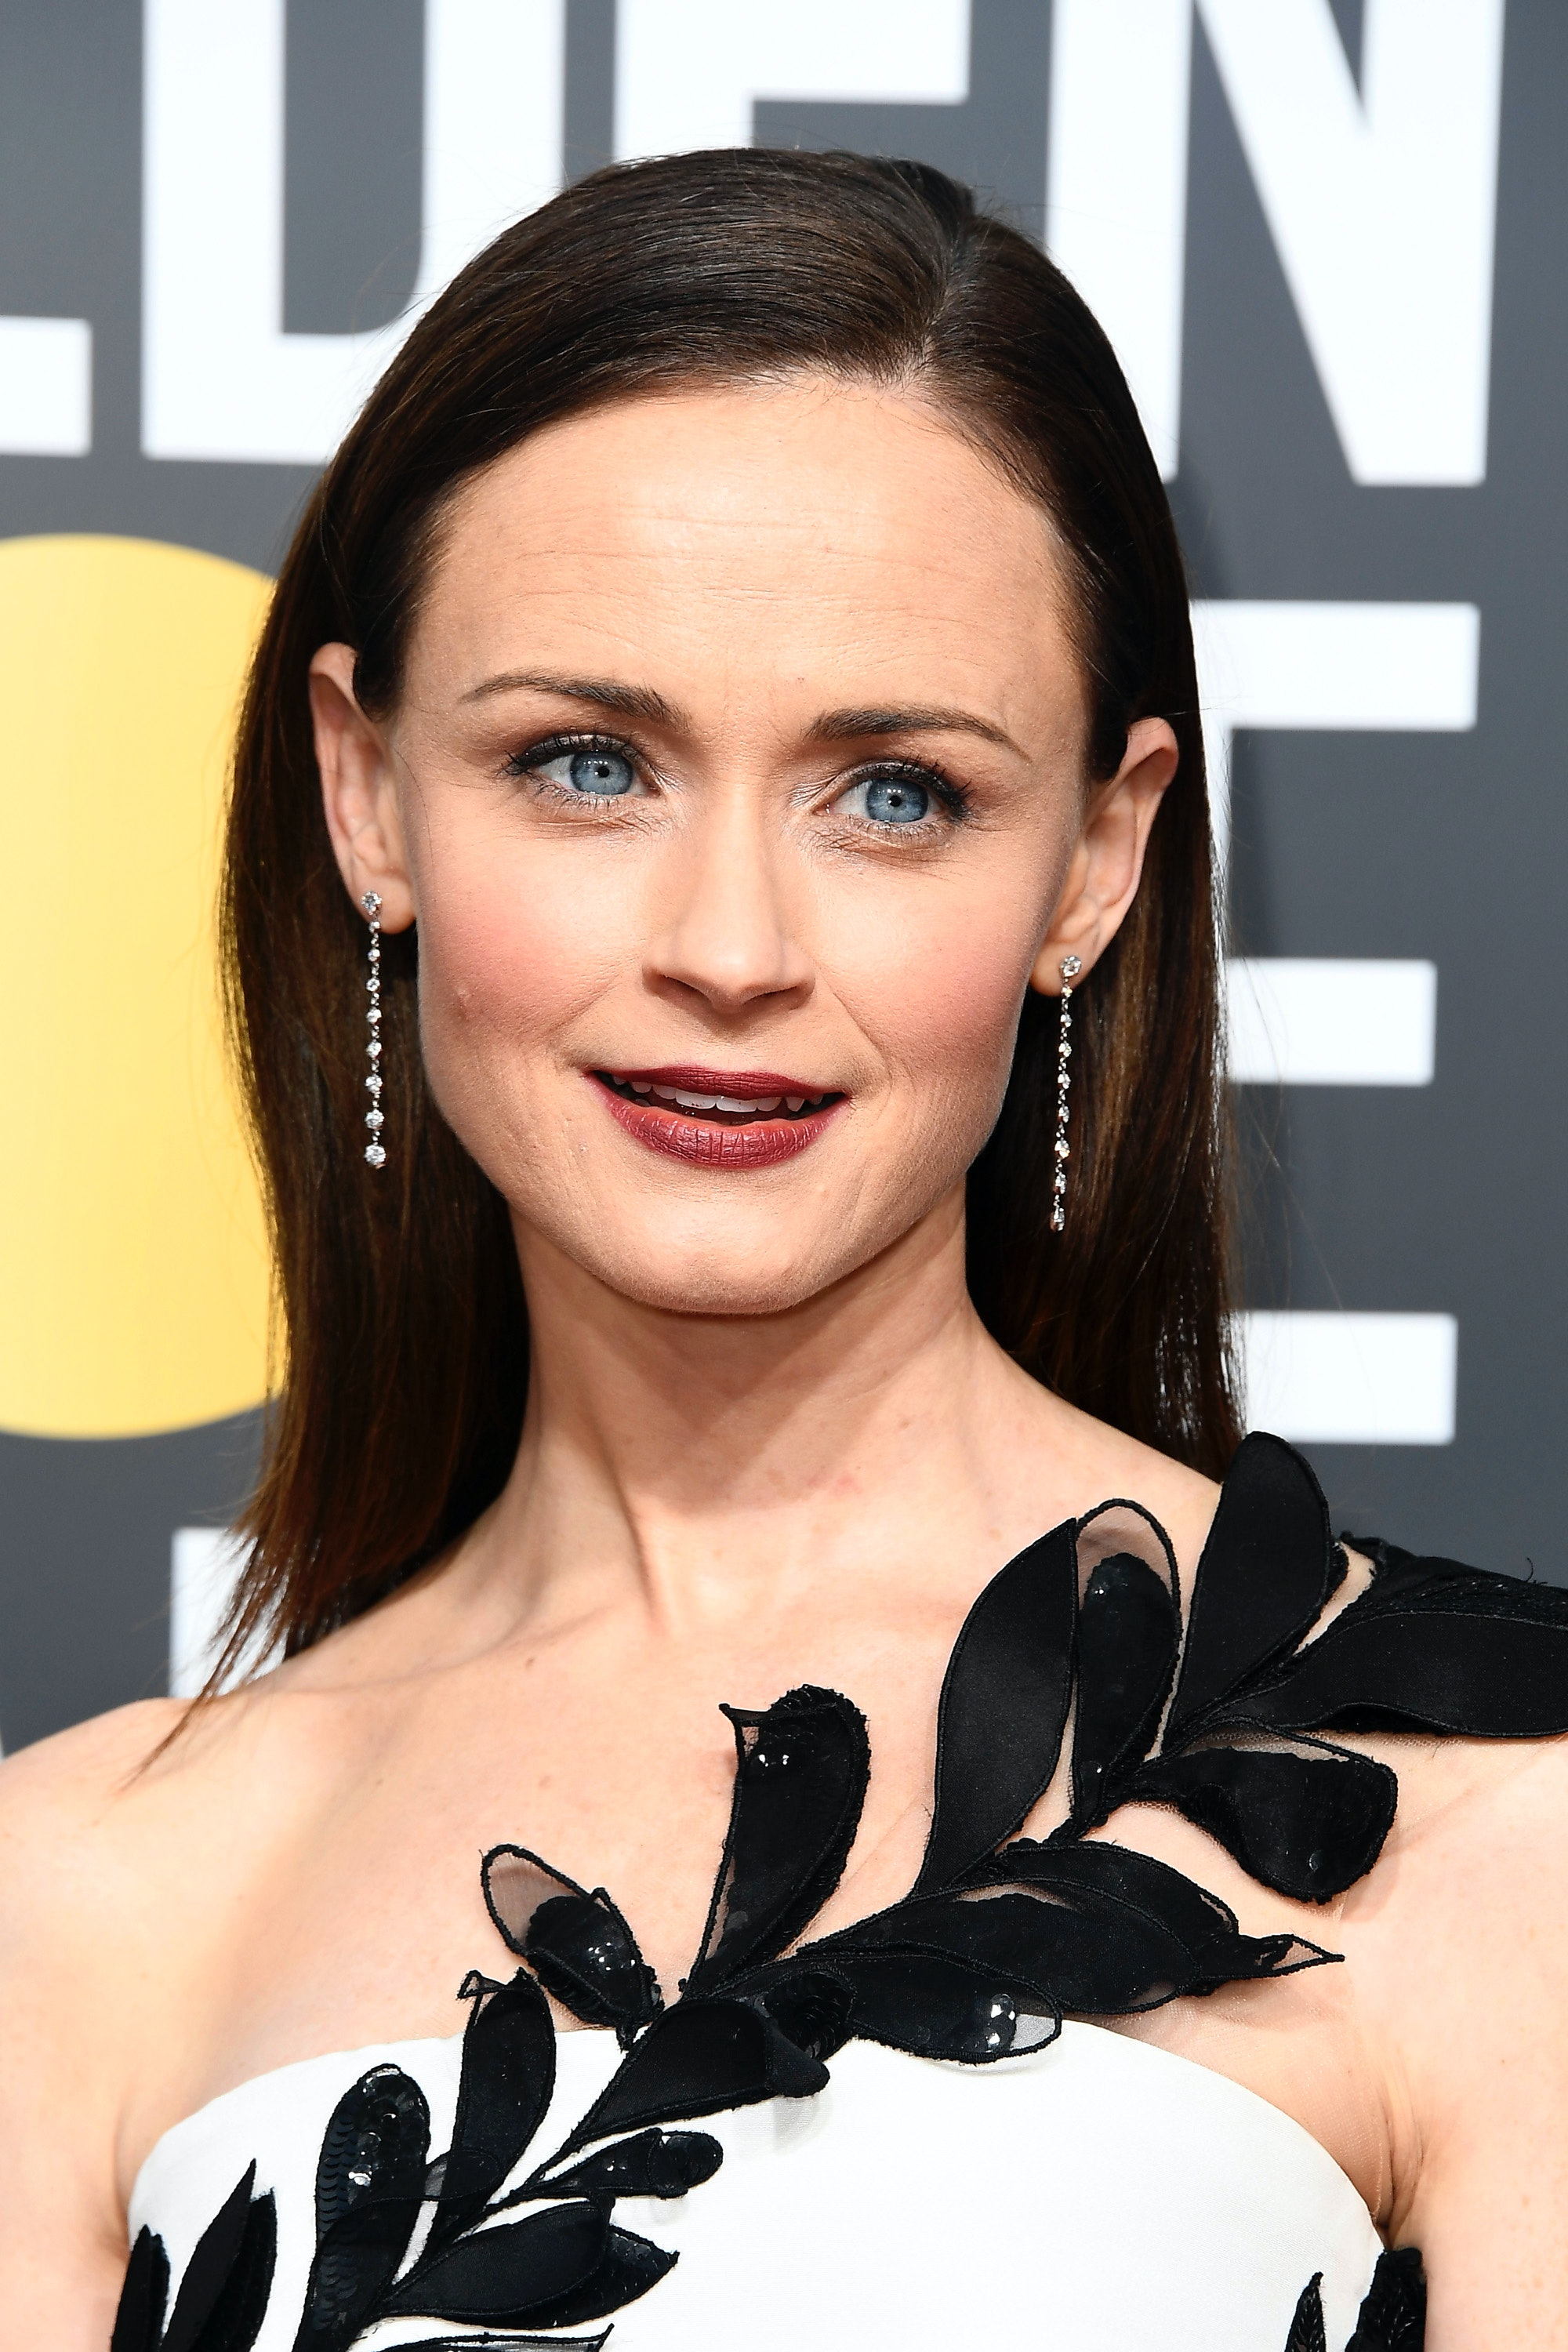 Photos Alexis Bledel naked (74 photo), Topless, Sideboobs, Feet, see through 2019